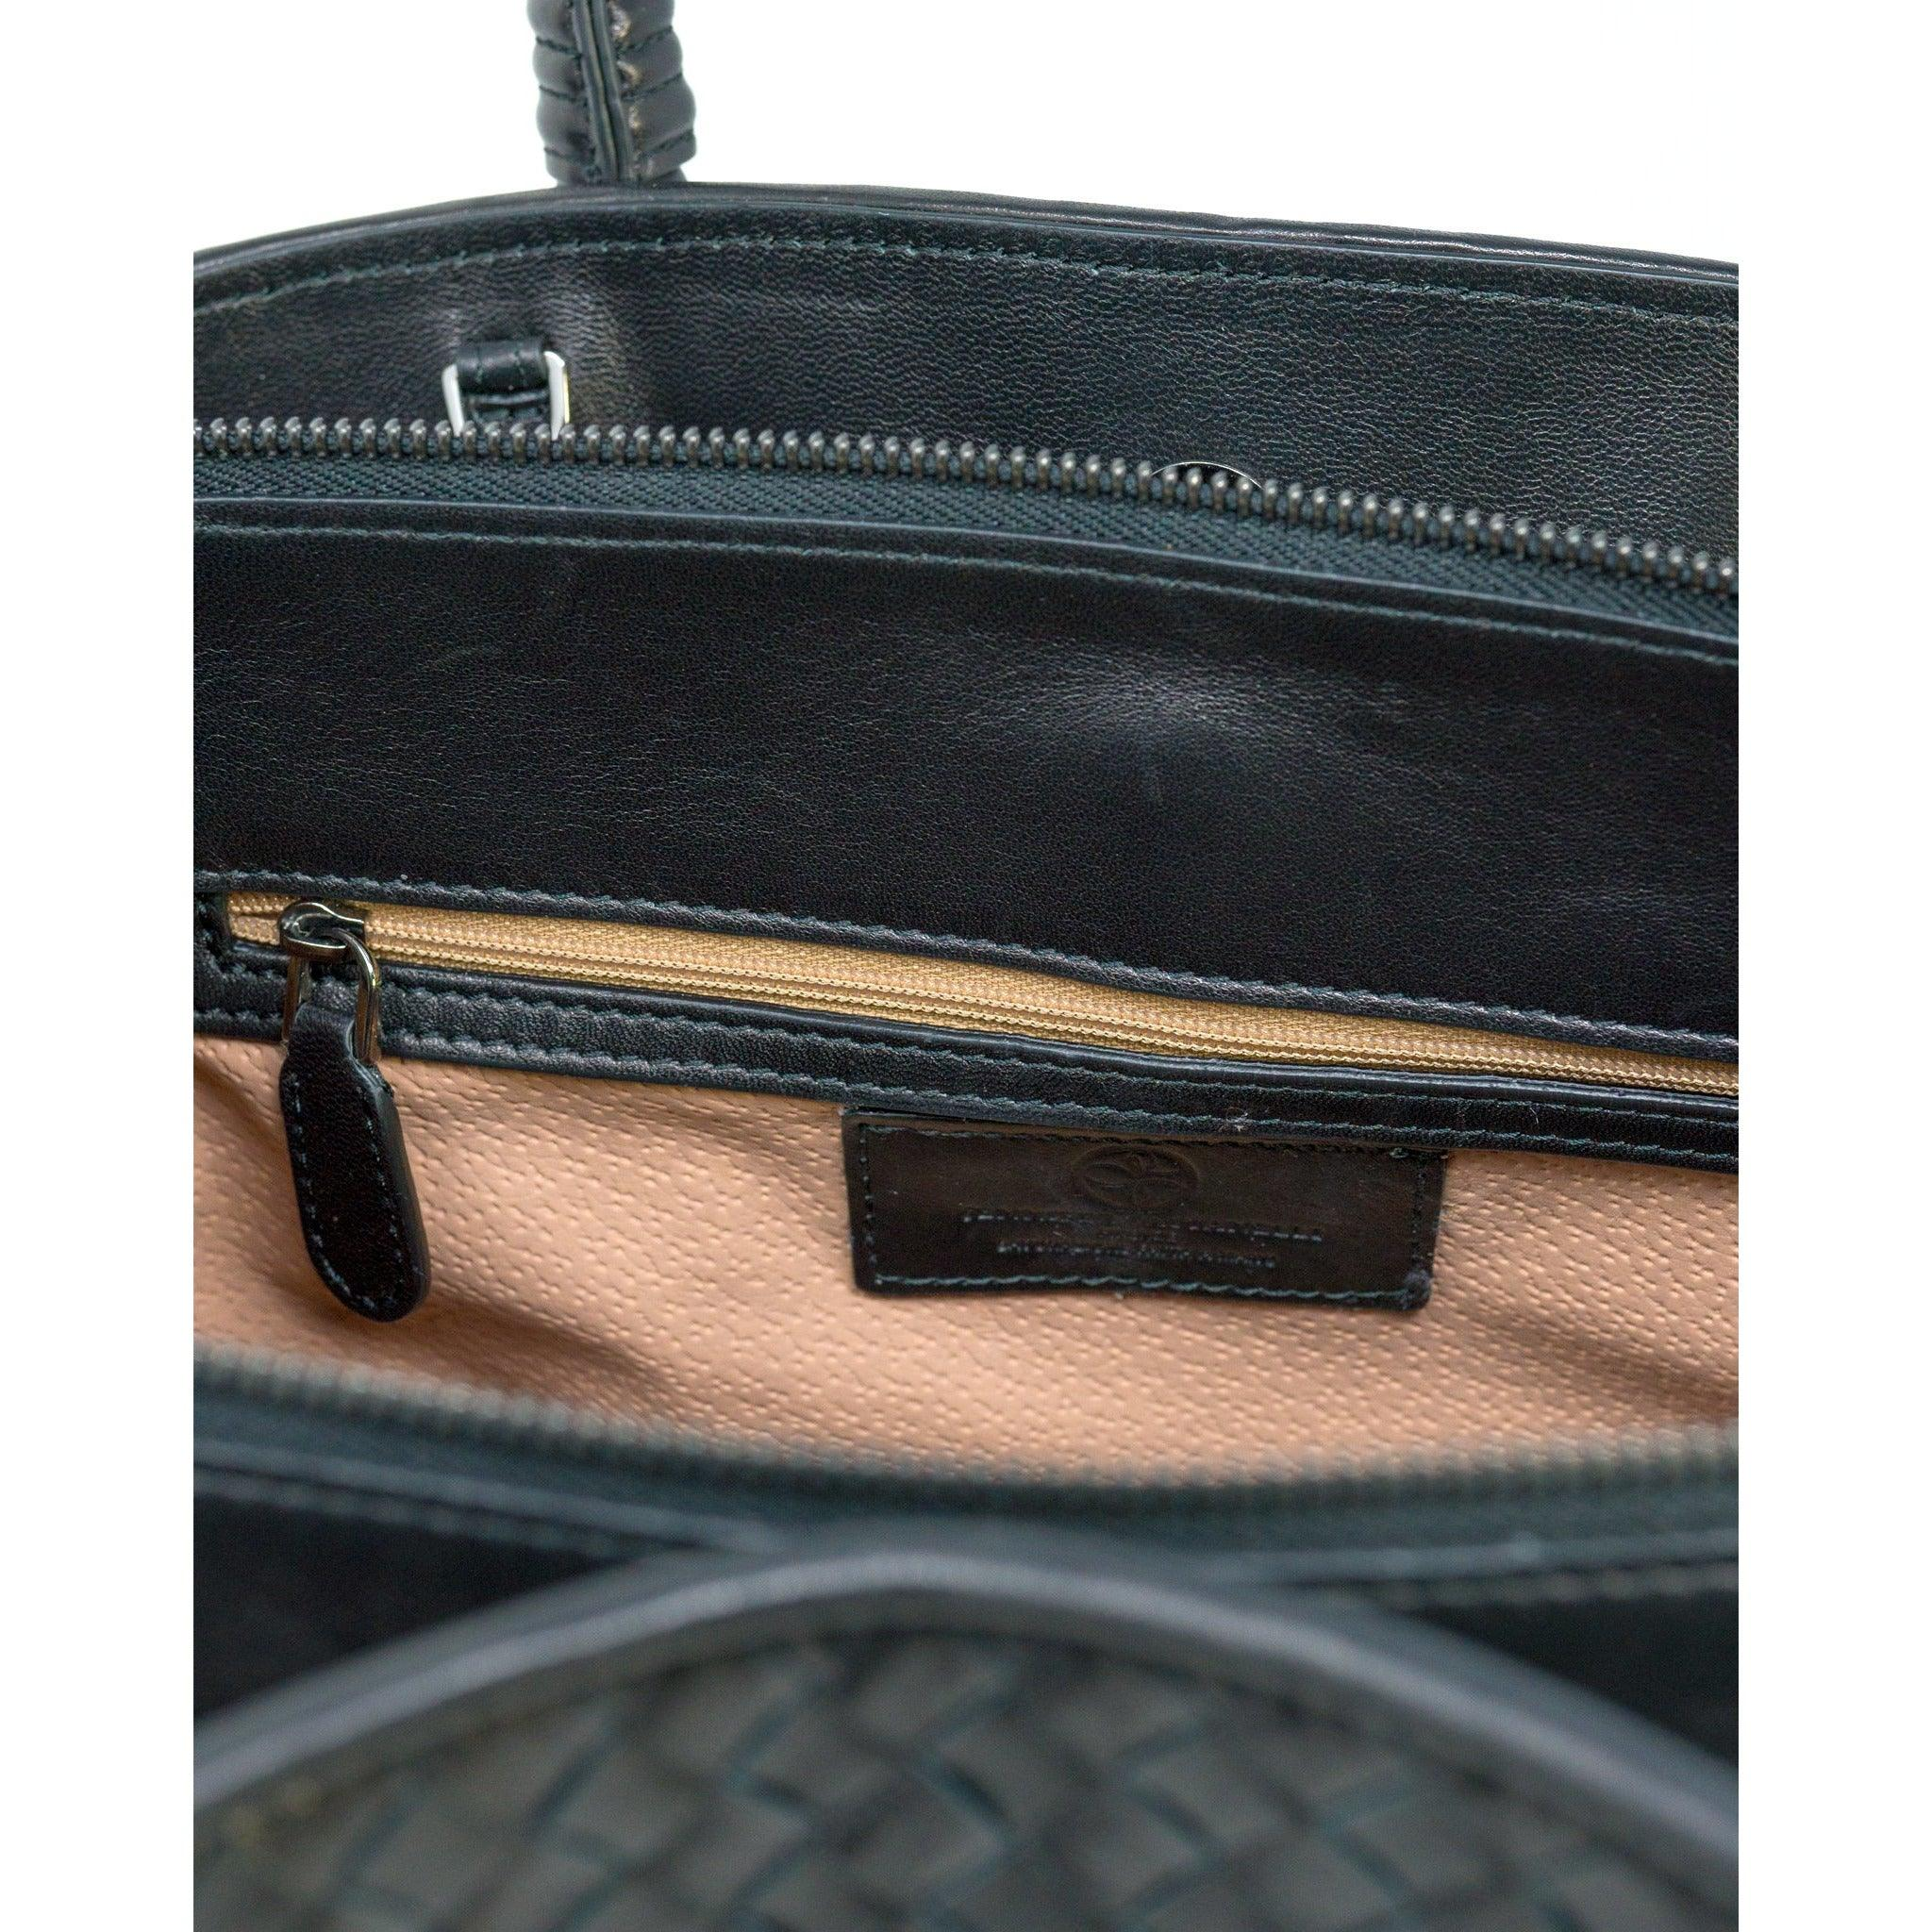 JT339 5546 Shoulder Bag - New Fall Winter 2019-2020 Collection